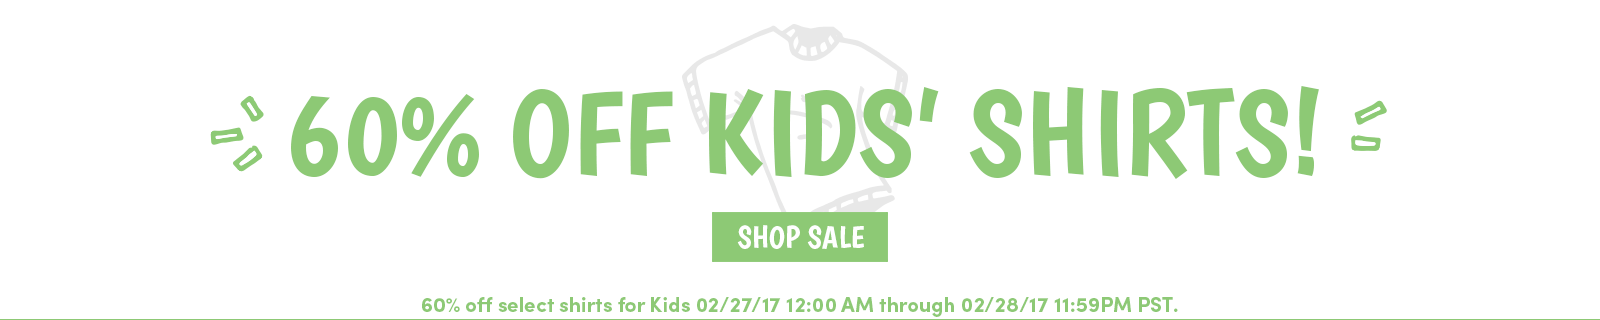 Kids' Shirts Sale 60 Percent Off